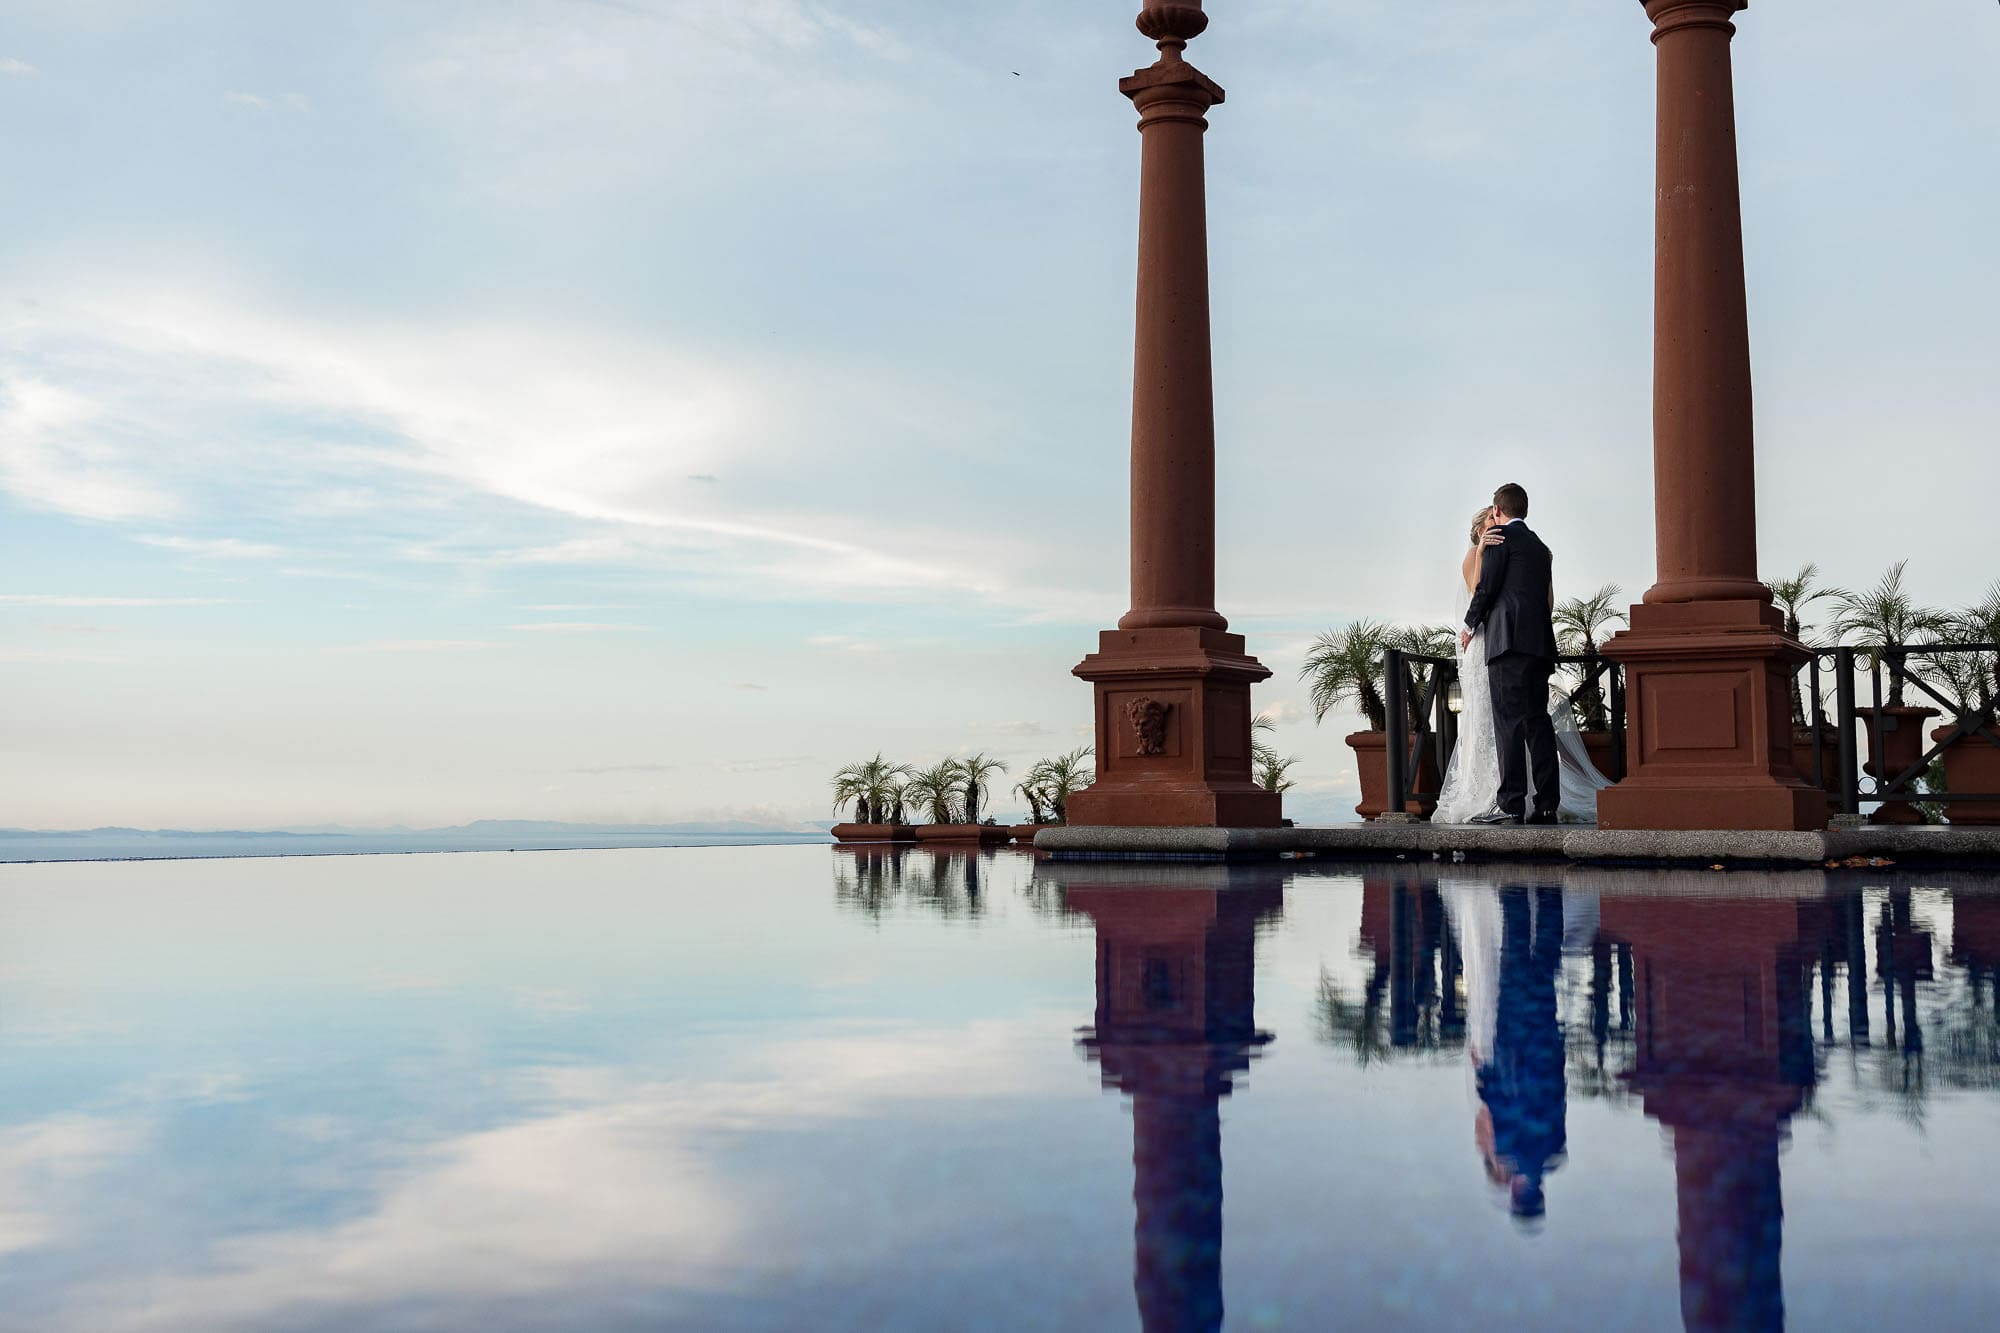 A beautiful moment of just the couple with the infinity pool and the sky